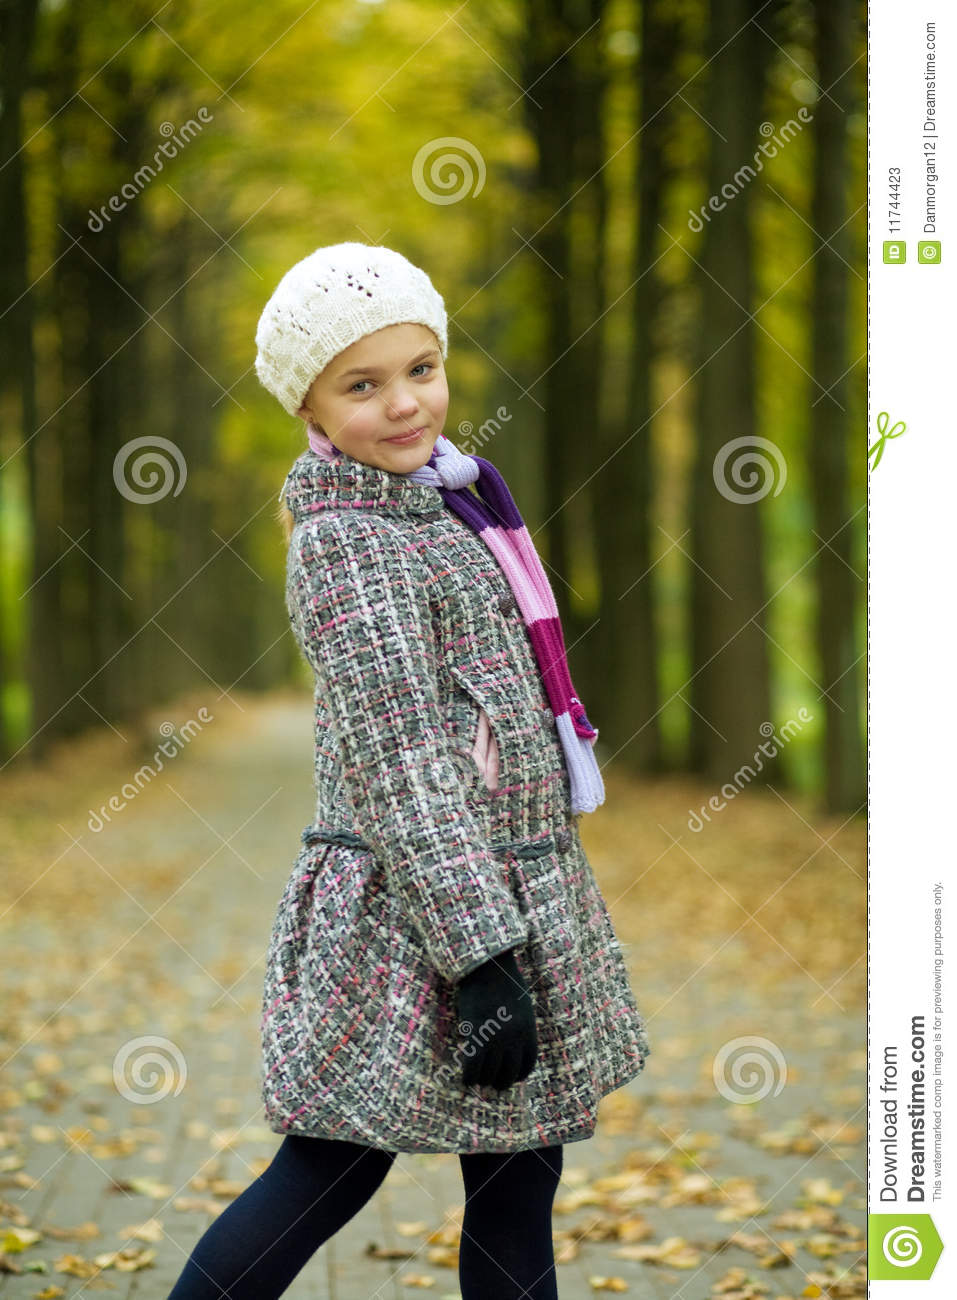 Young girls winter coats-2275